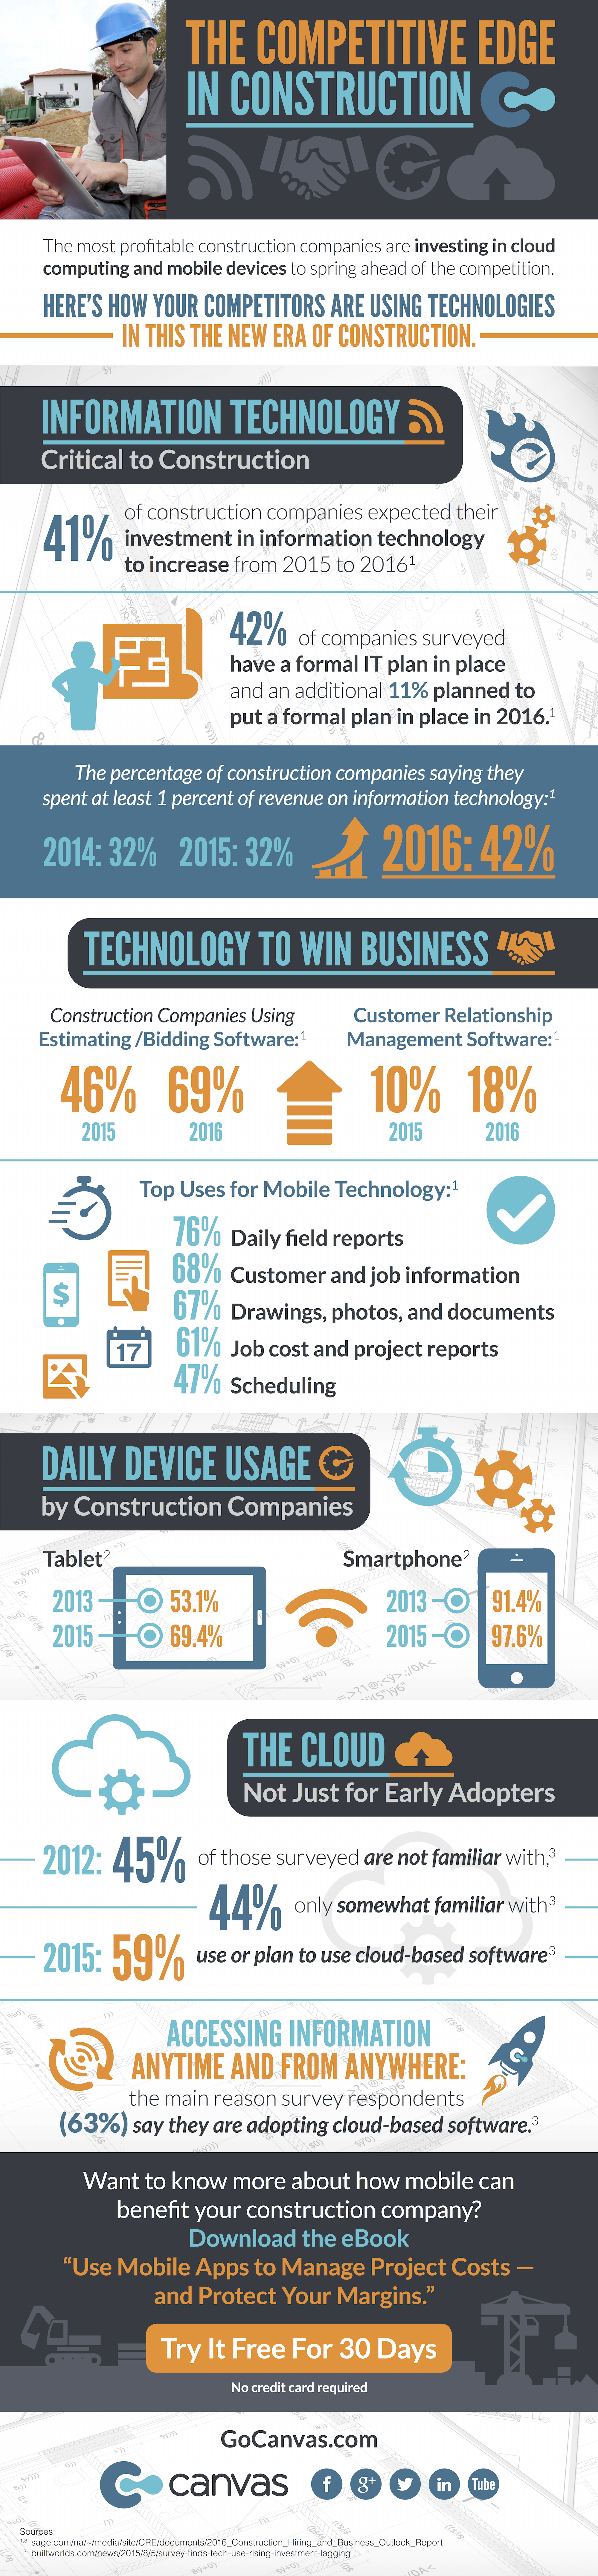 The Competitive Edge in Construction